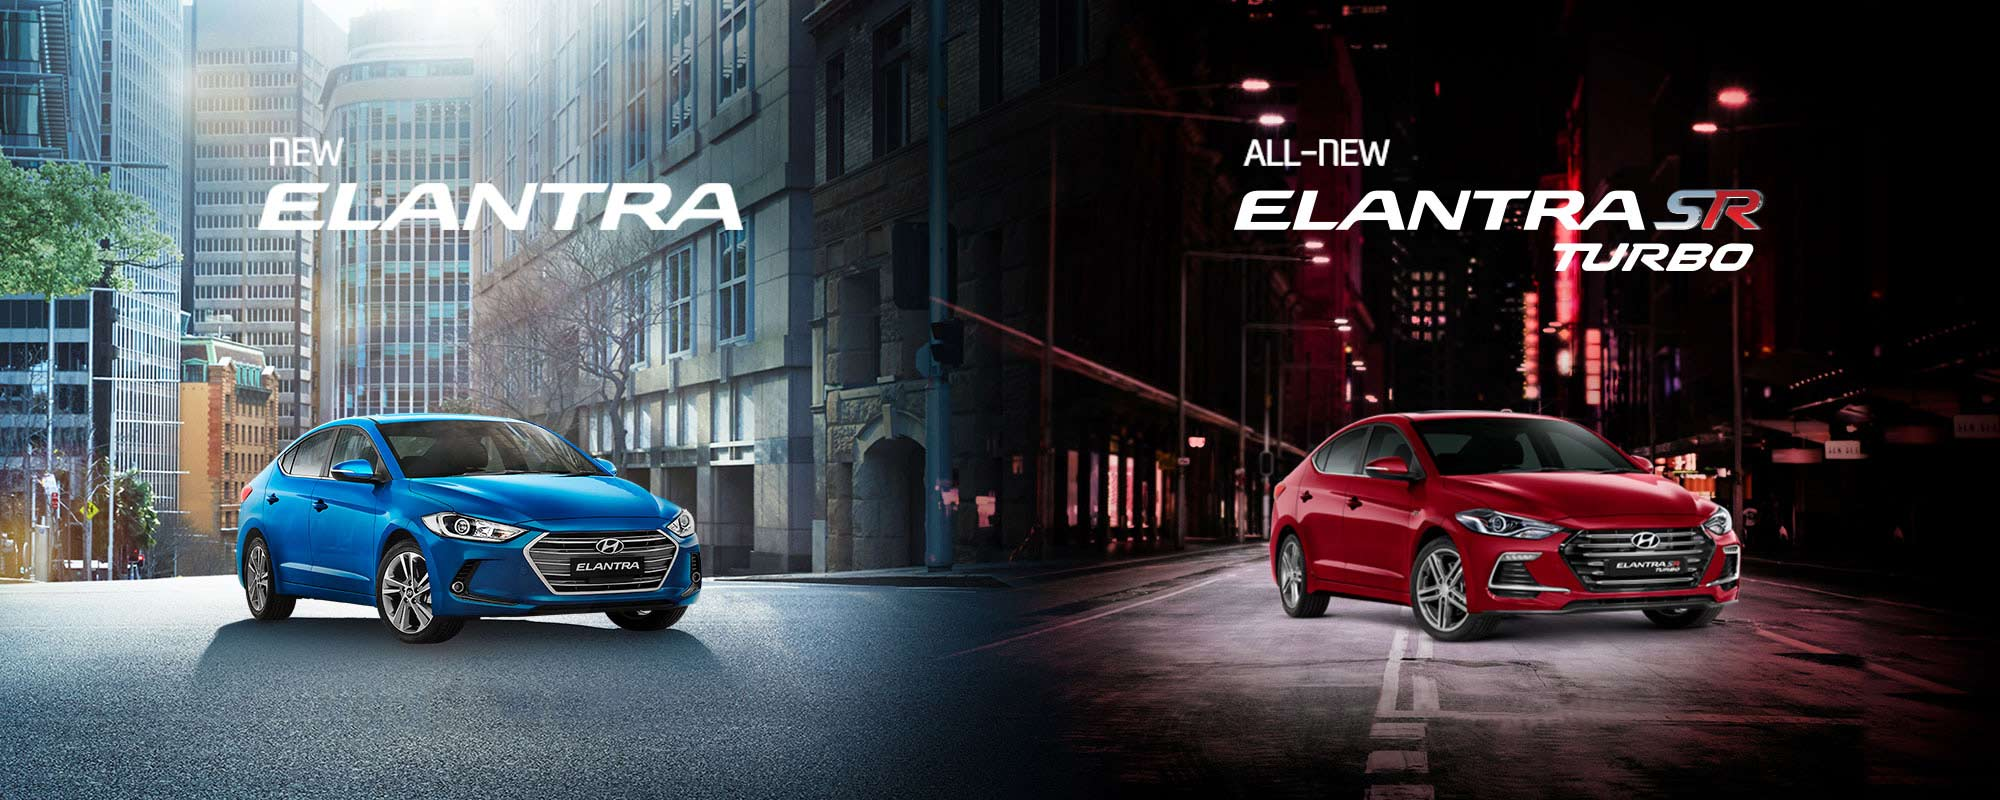 We threw everything at it. The All-new Elantra available at Northside Hyundai Brisbane.